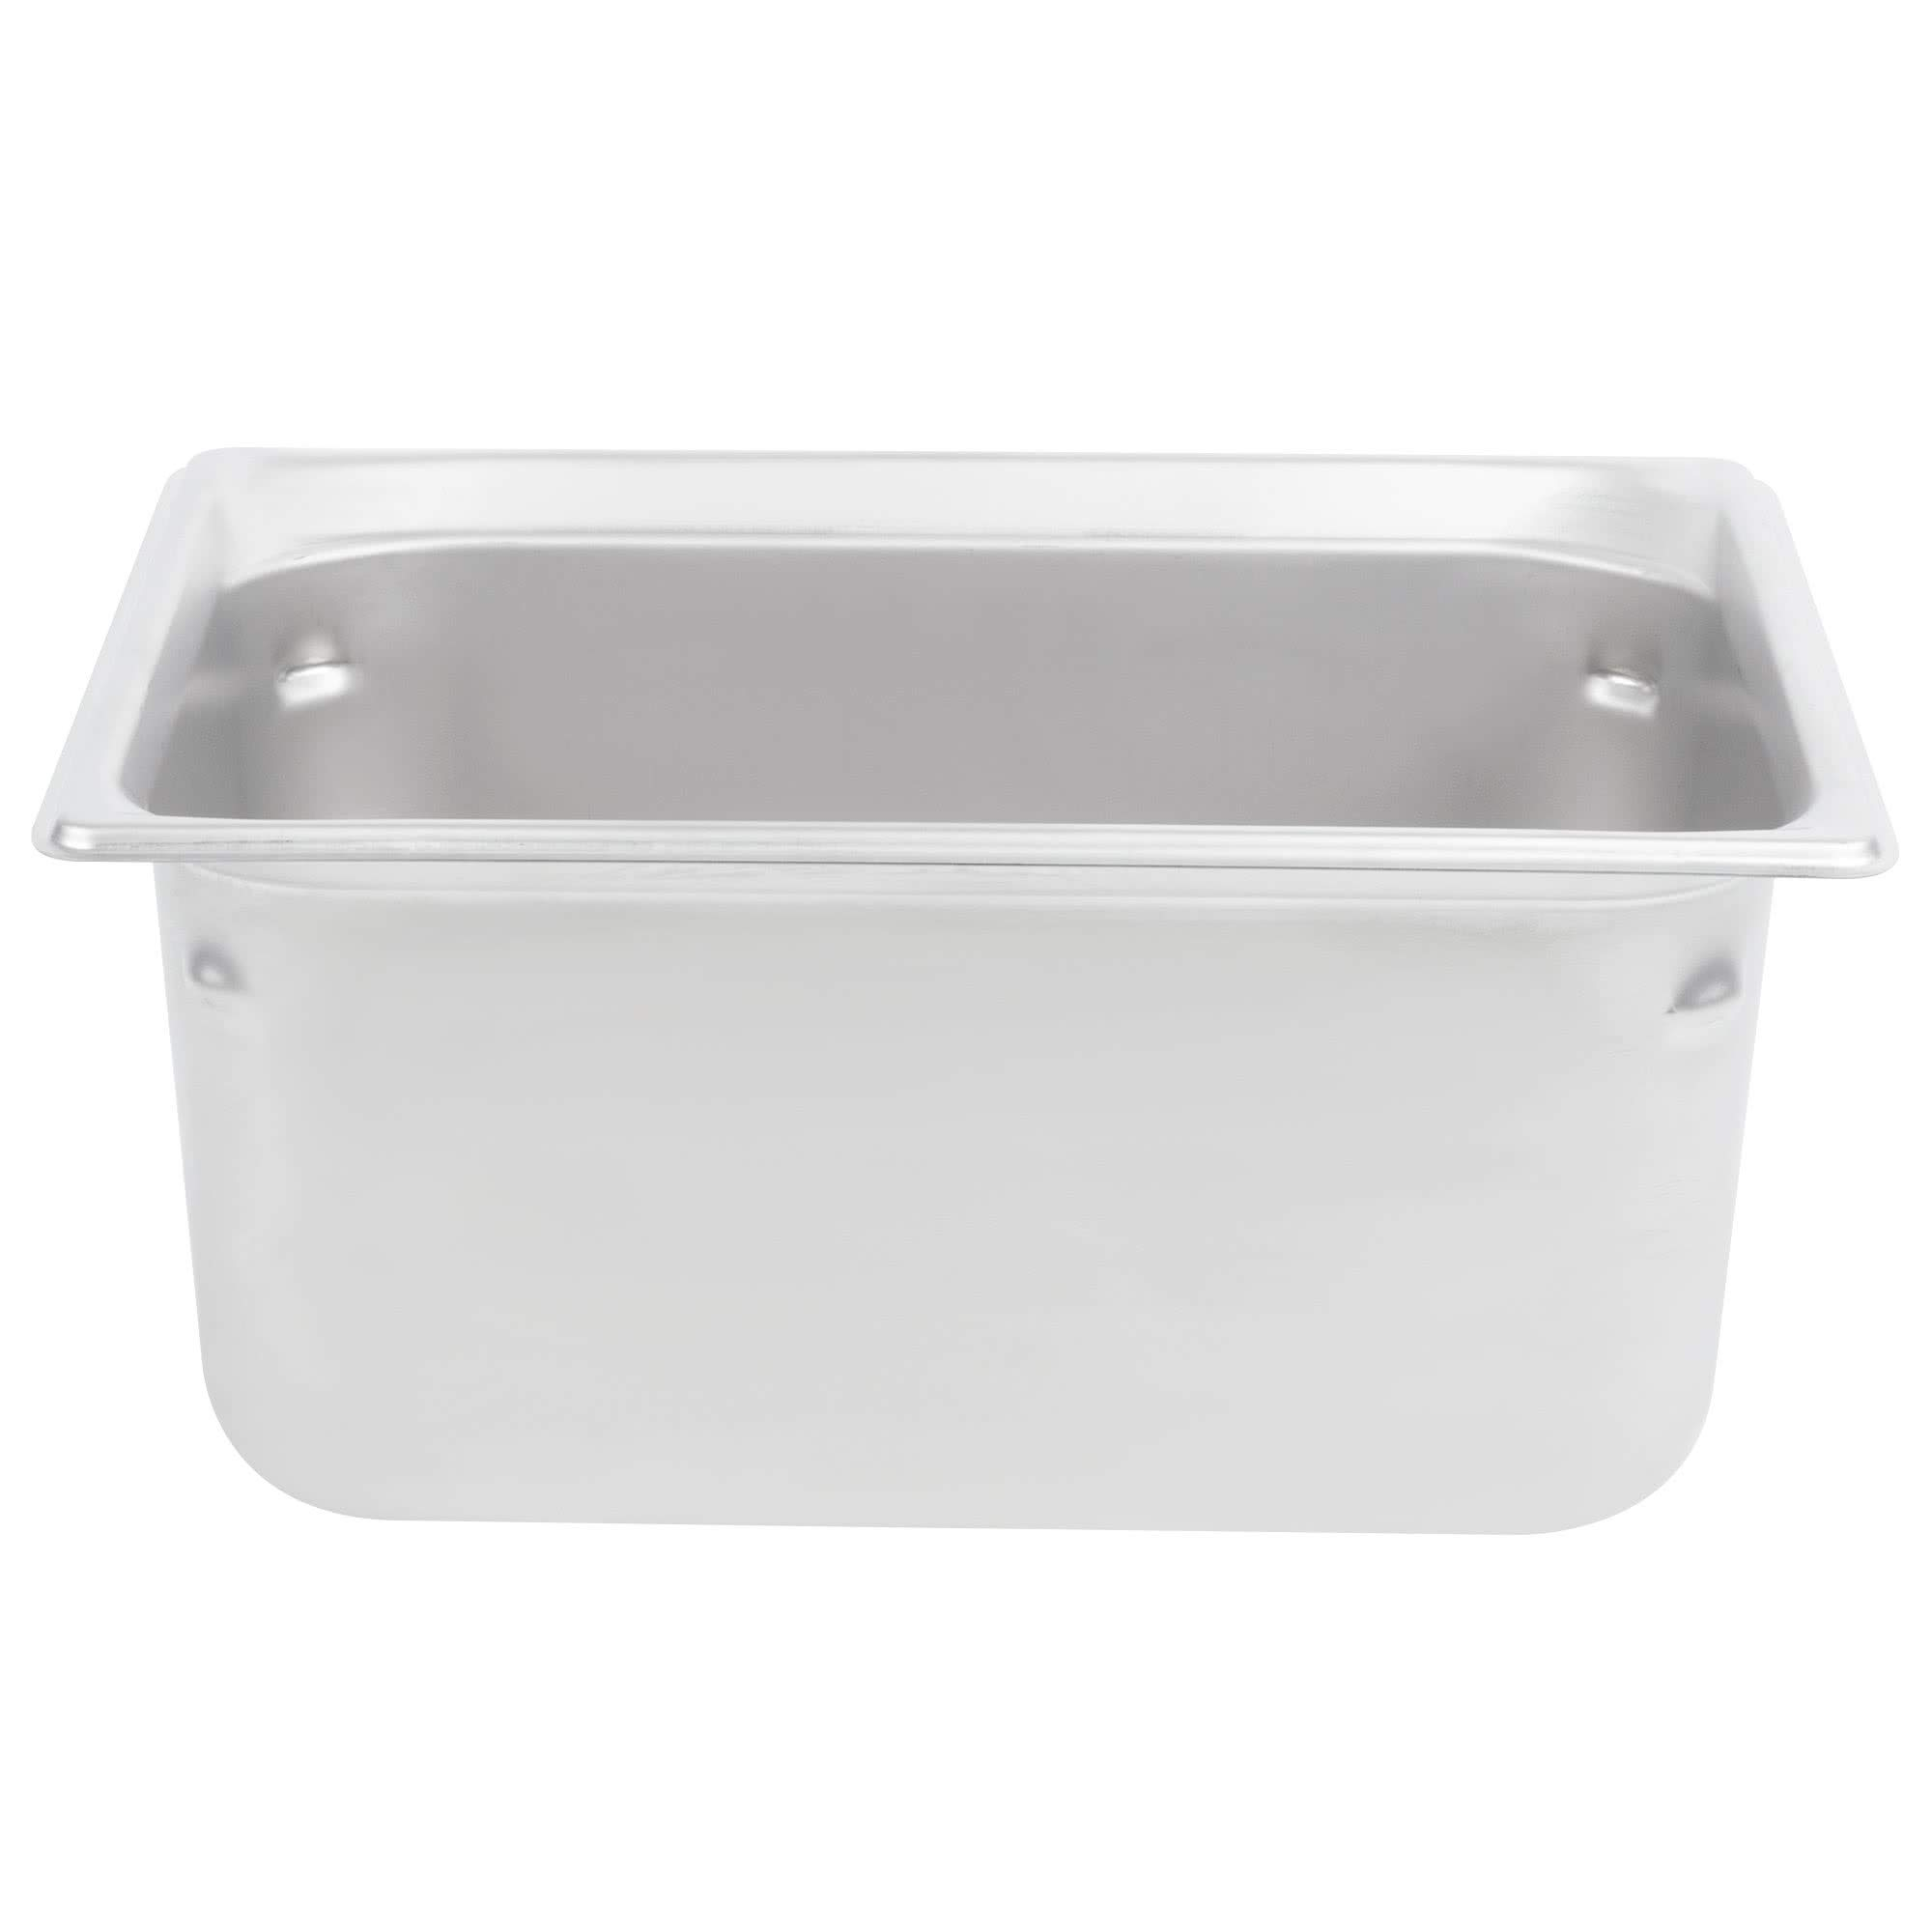 TableTop King 90262 Super Pan 3 1/2 Size Anti-Jam Stainless Steel Steam Table/Hotel Pan - 6'' Deep by TableTop King